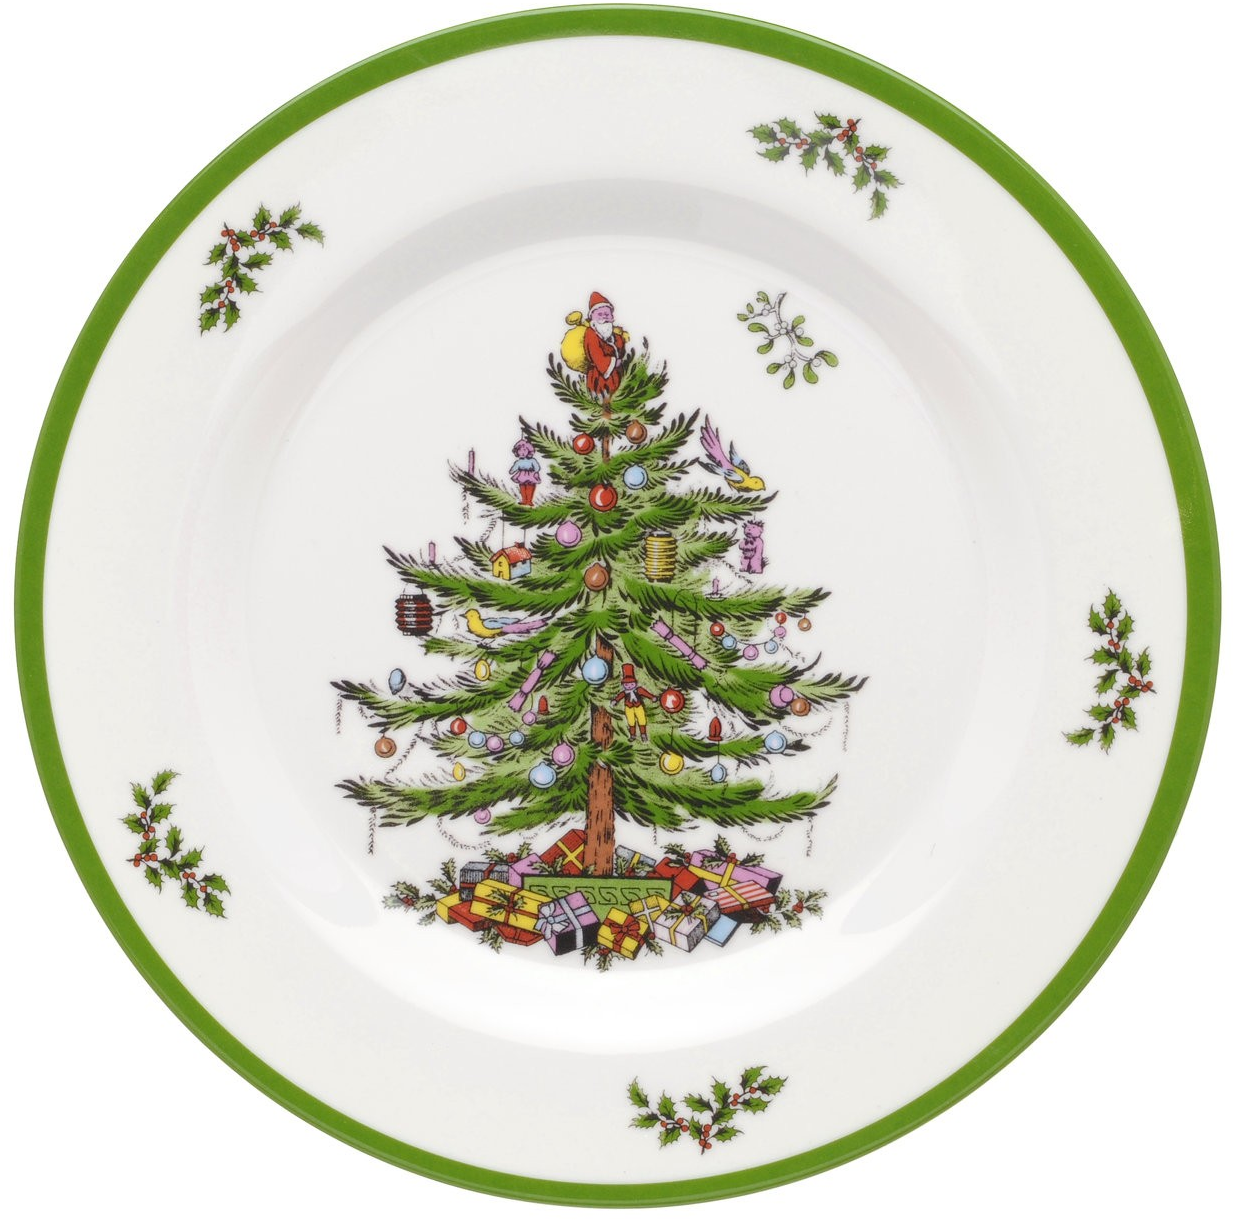 Spode Christmas Tree Melamine Set of 4 Salad Plates - Spode USA